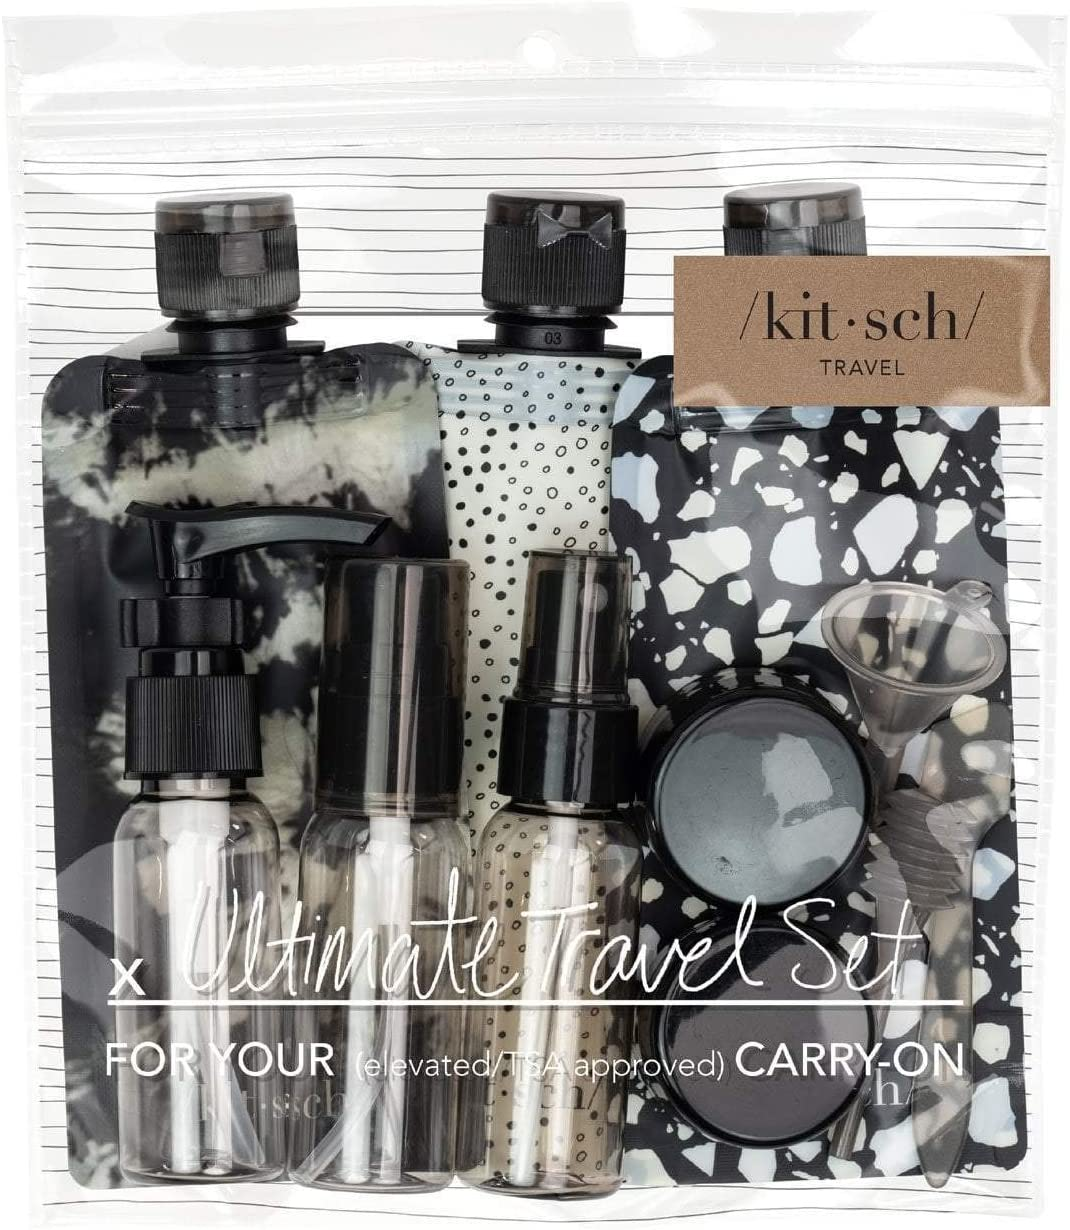 Kitsch Ultimate Travel Bottles Set, Travel Containers - 11pcs (Black & Ivory)